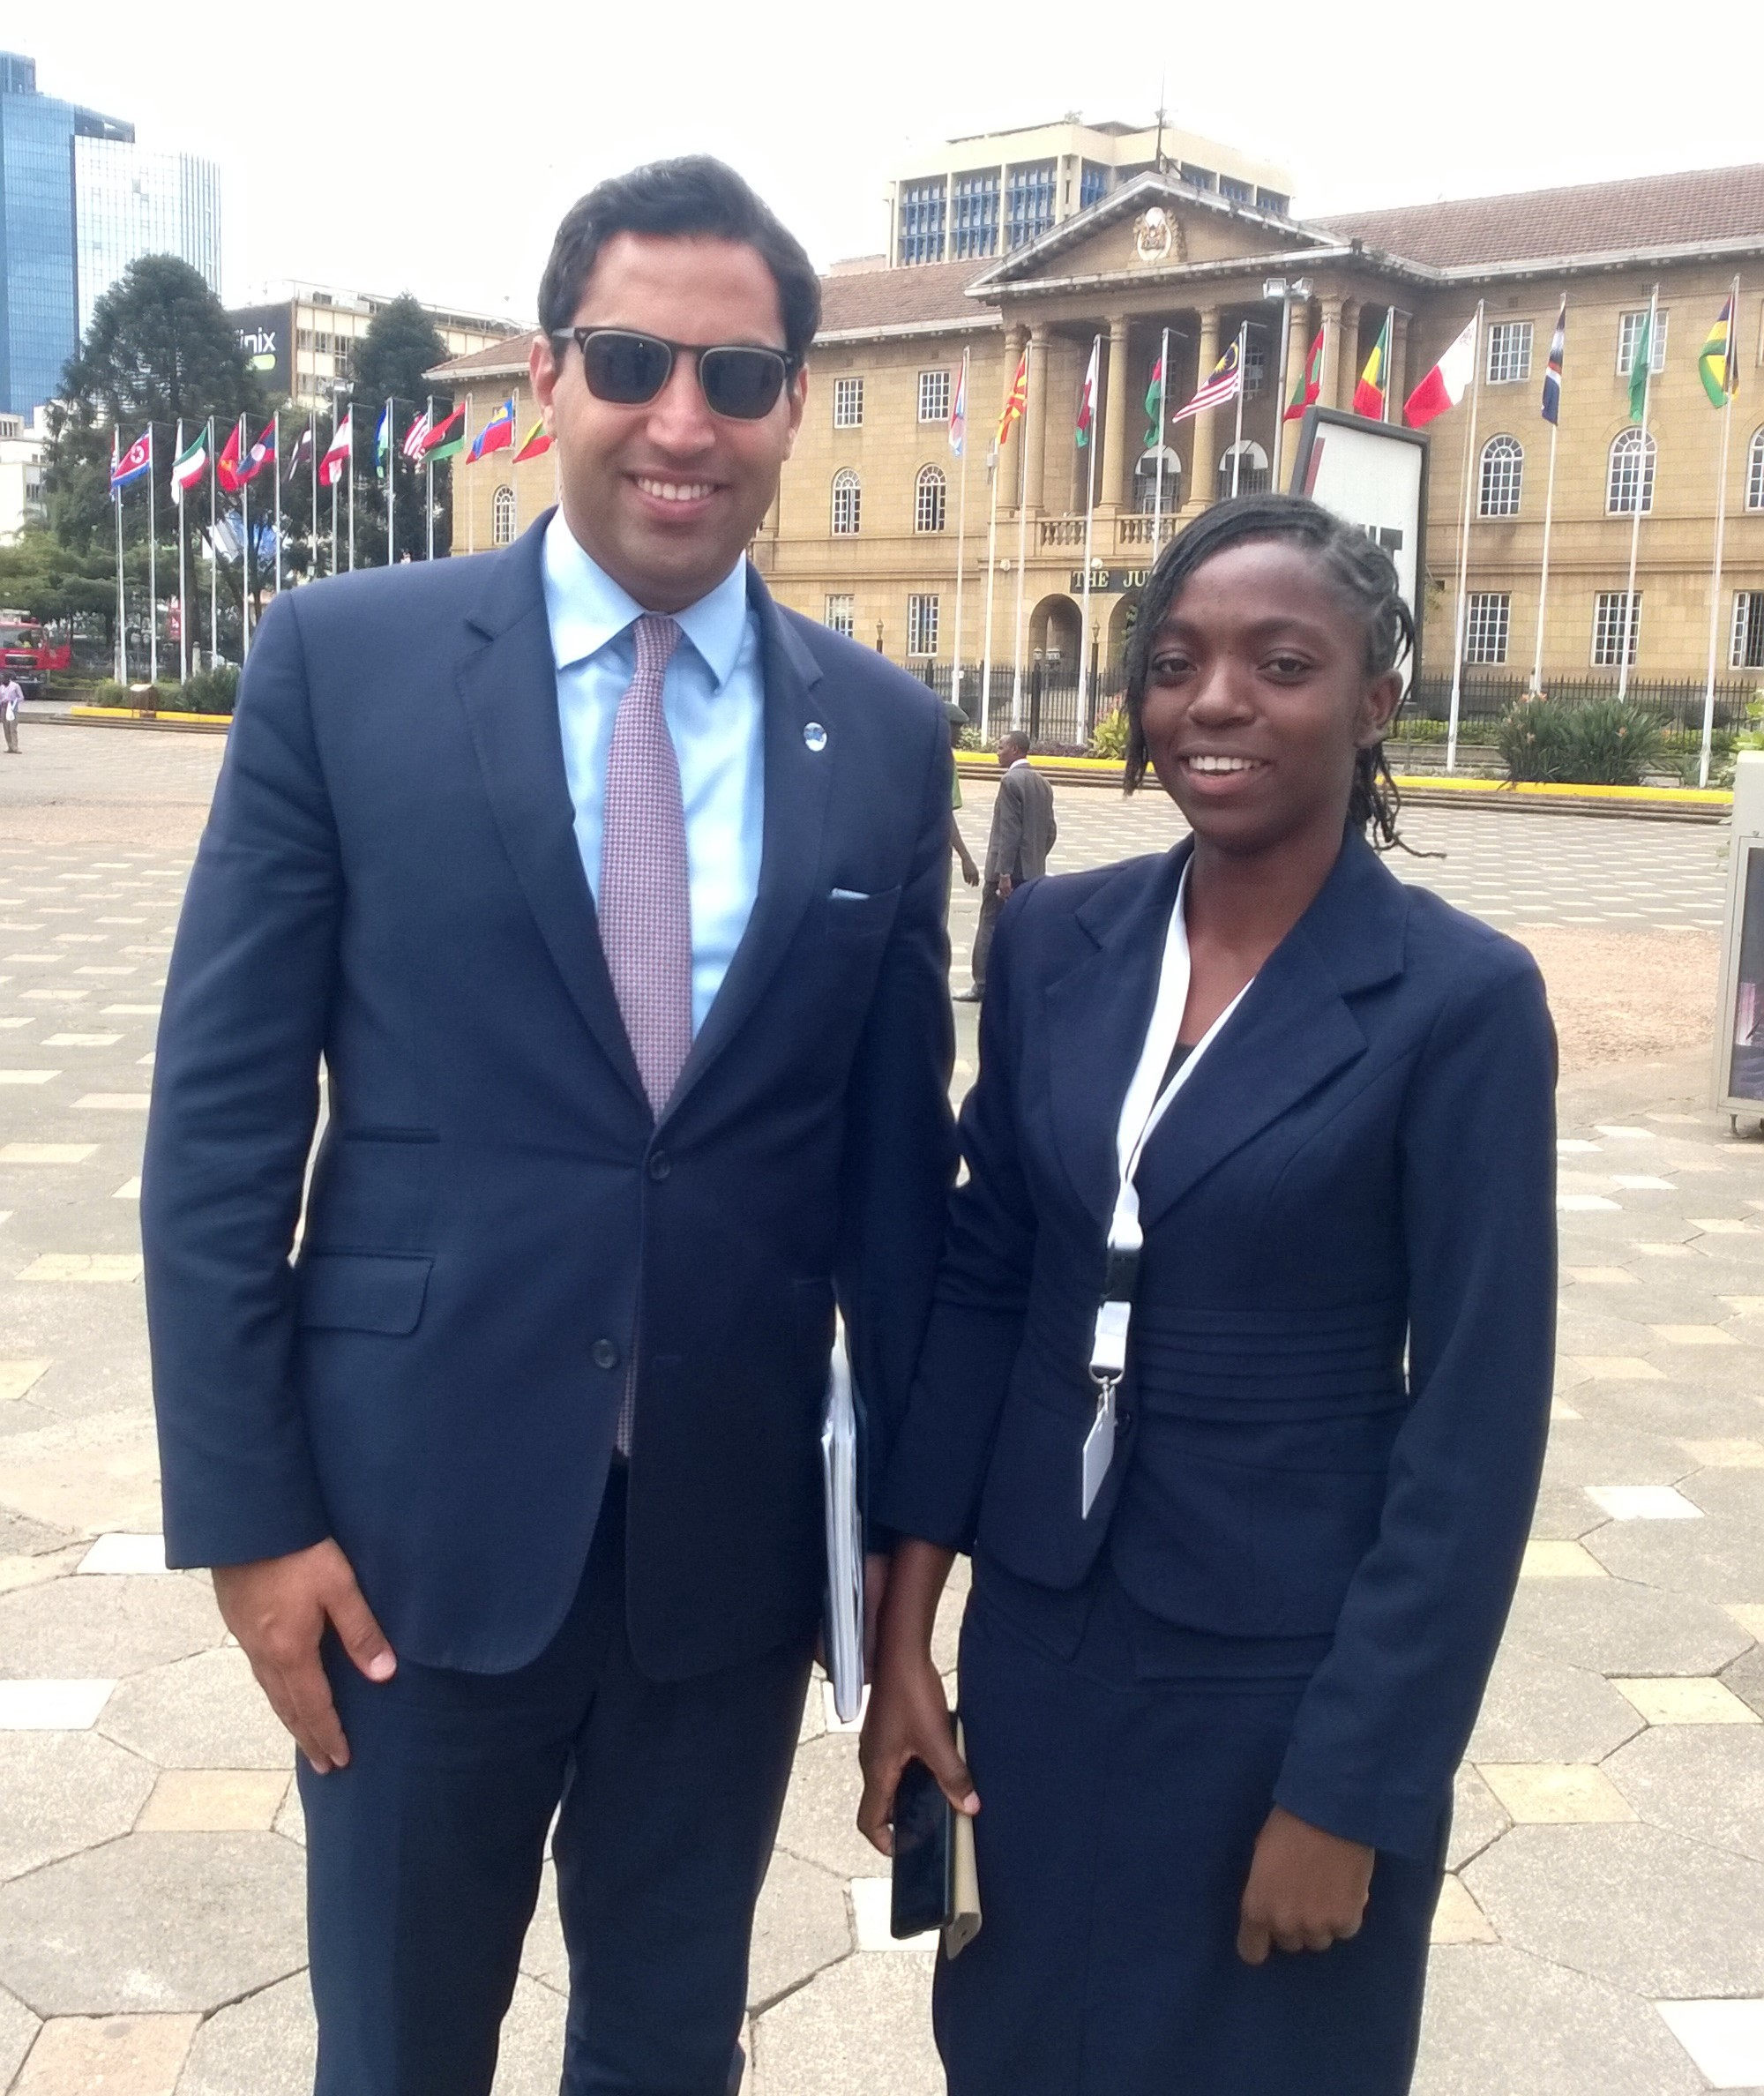 Ahmad Alhendawi unctad 14 and youth forum: from decisions to what actions?